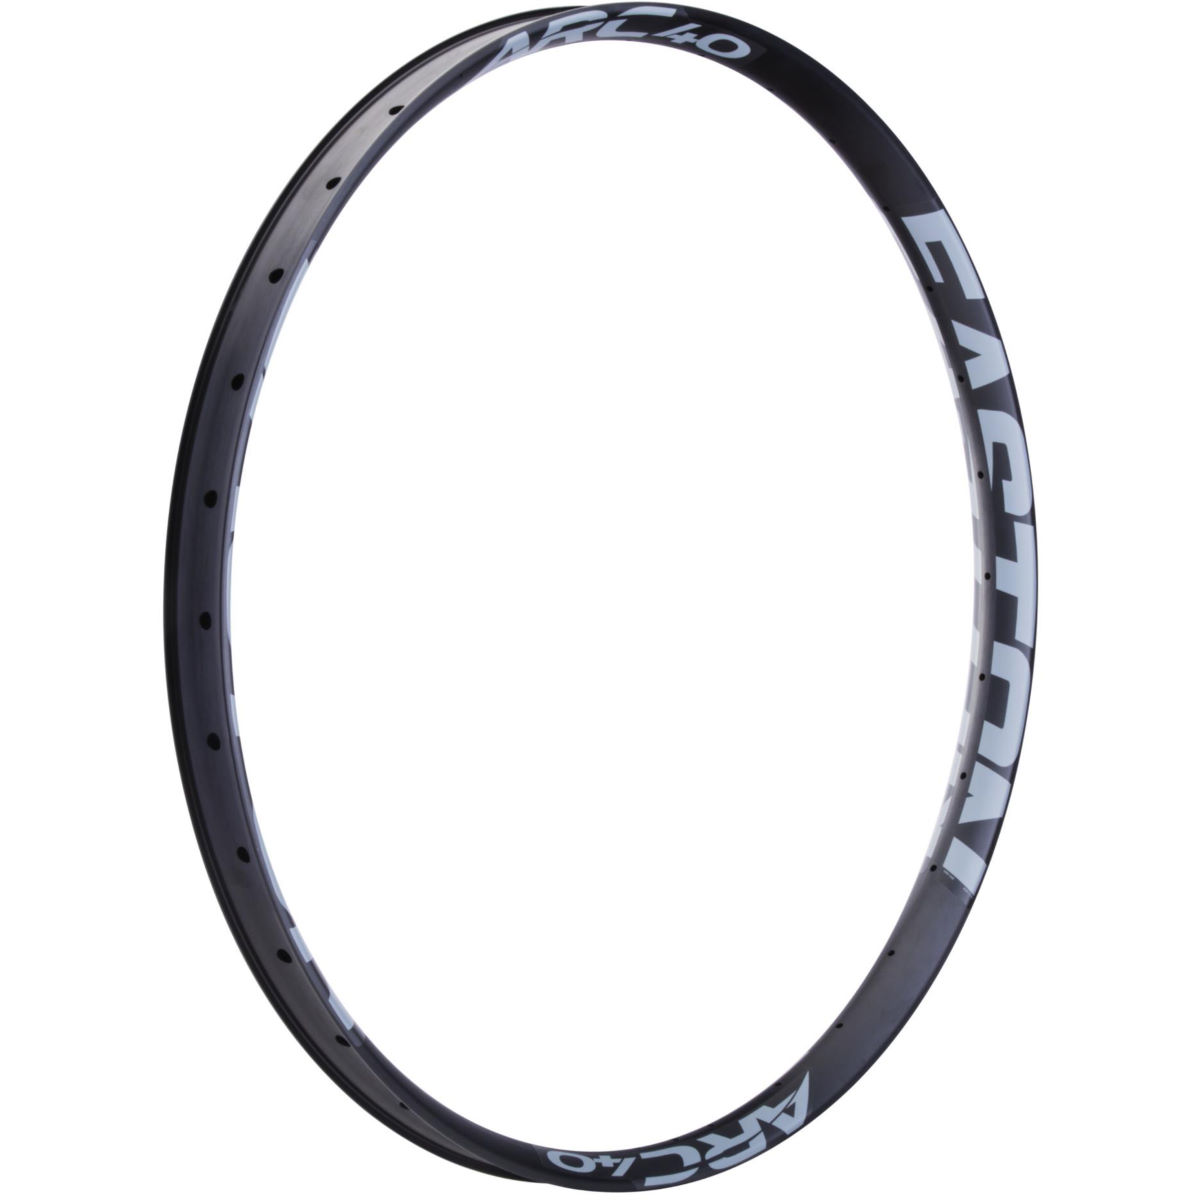 Easton Arc Plus MTB Rim - Llantas